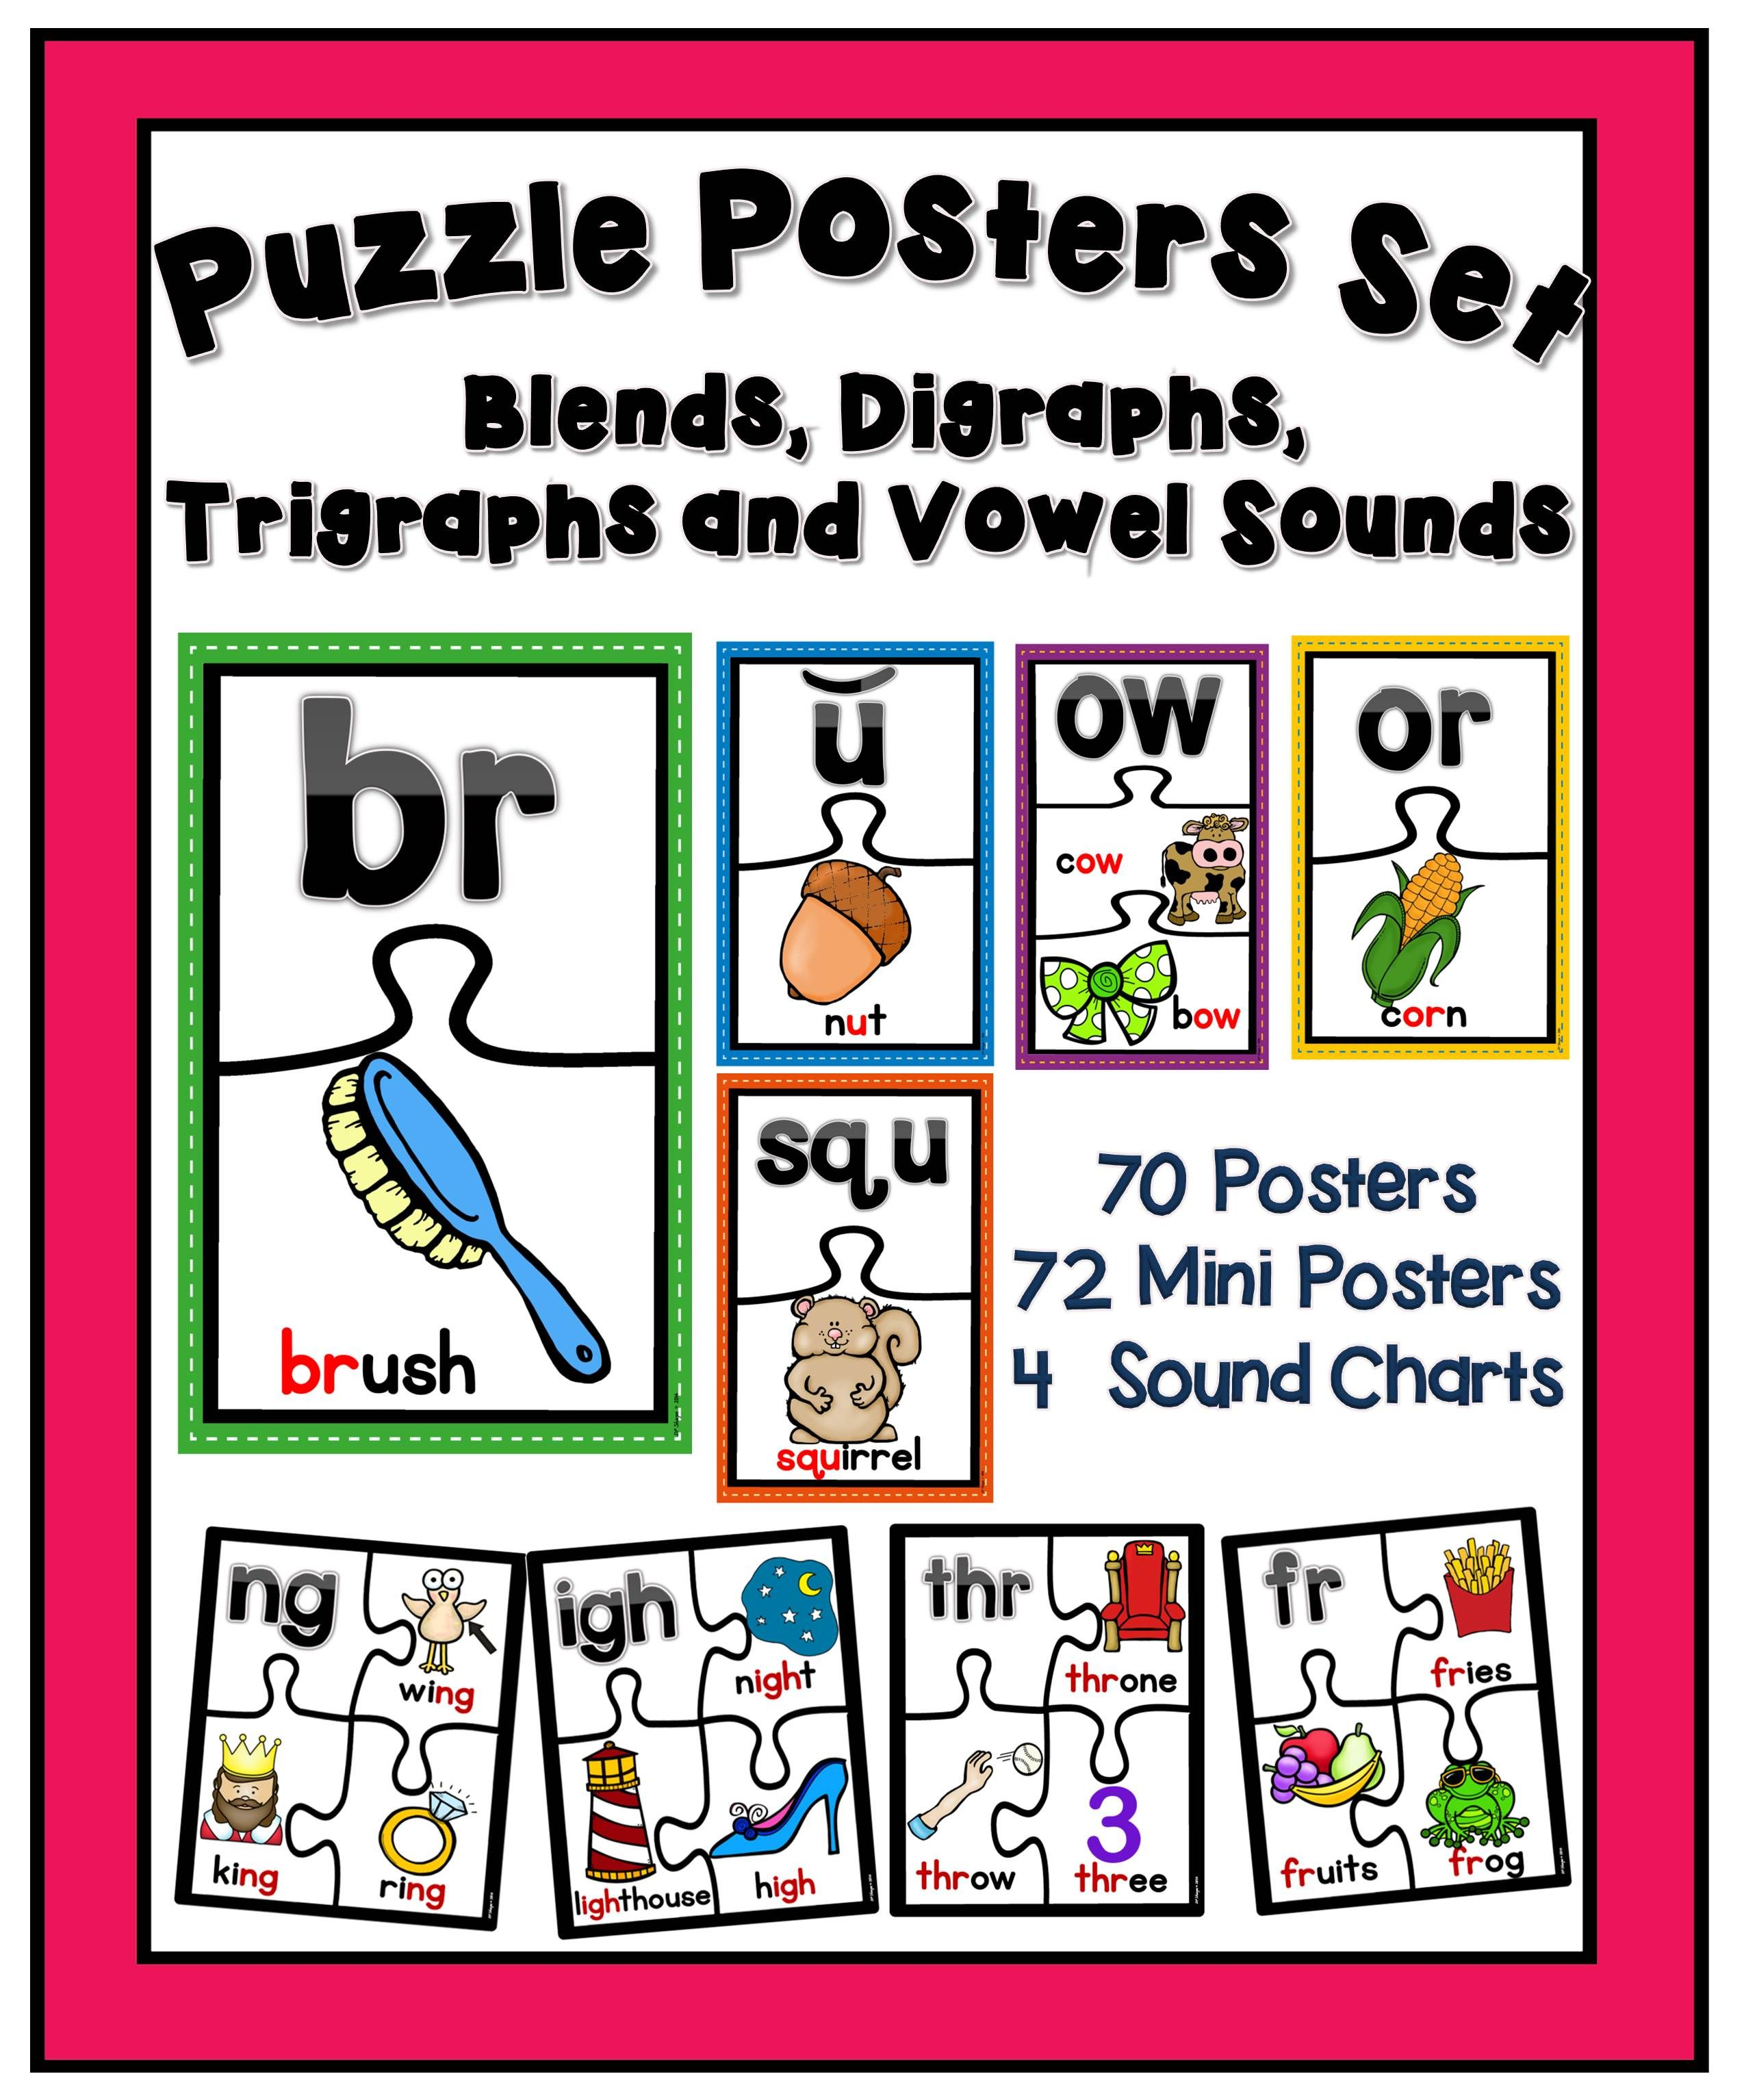 In This Sounds Puzzle Posters Set You Will Find 70 Sounds Puzzles Posters That Feature The Sound